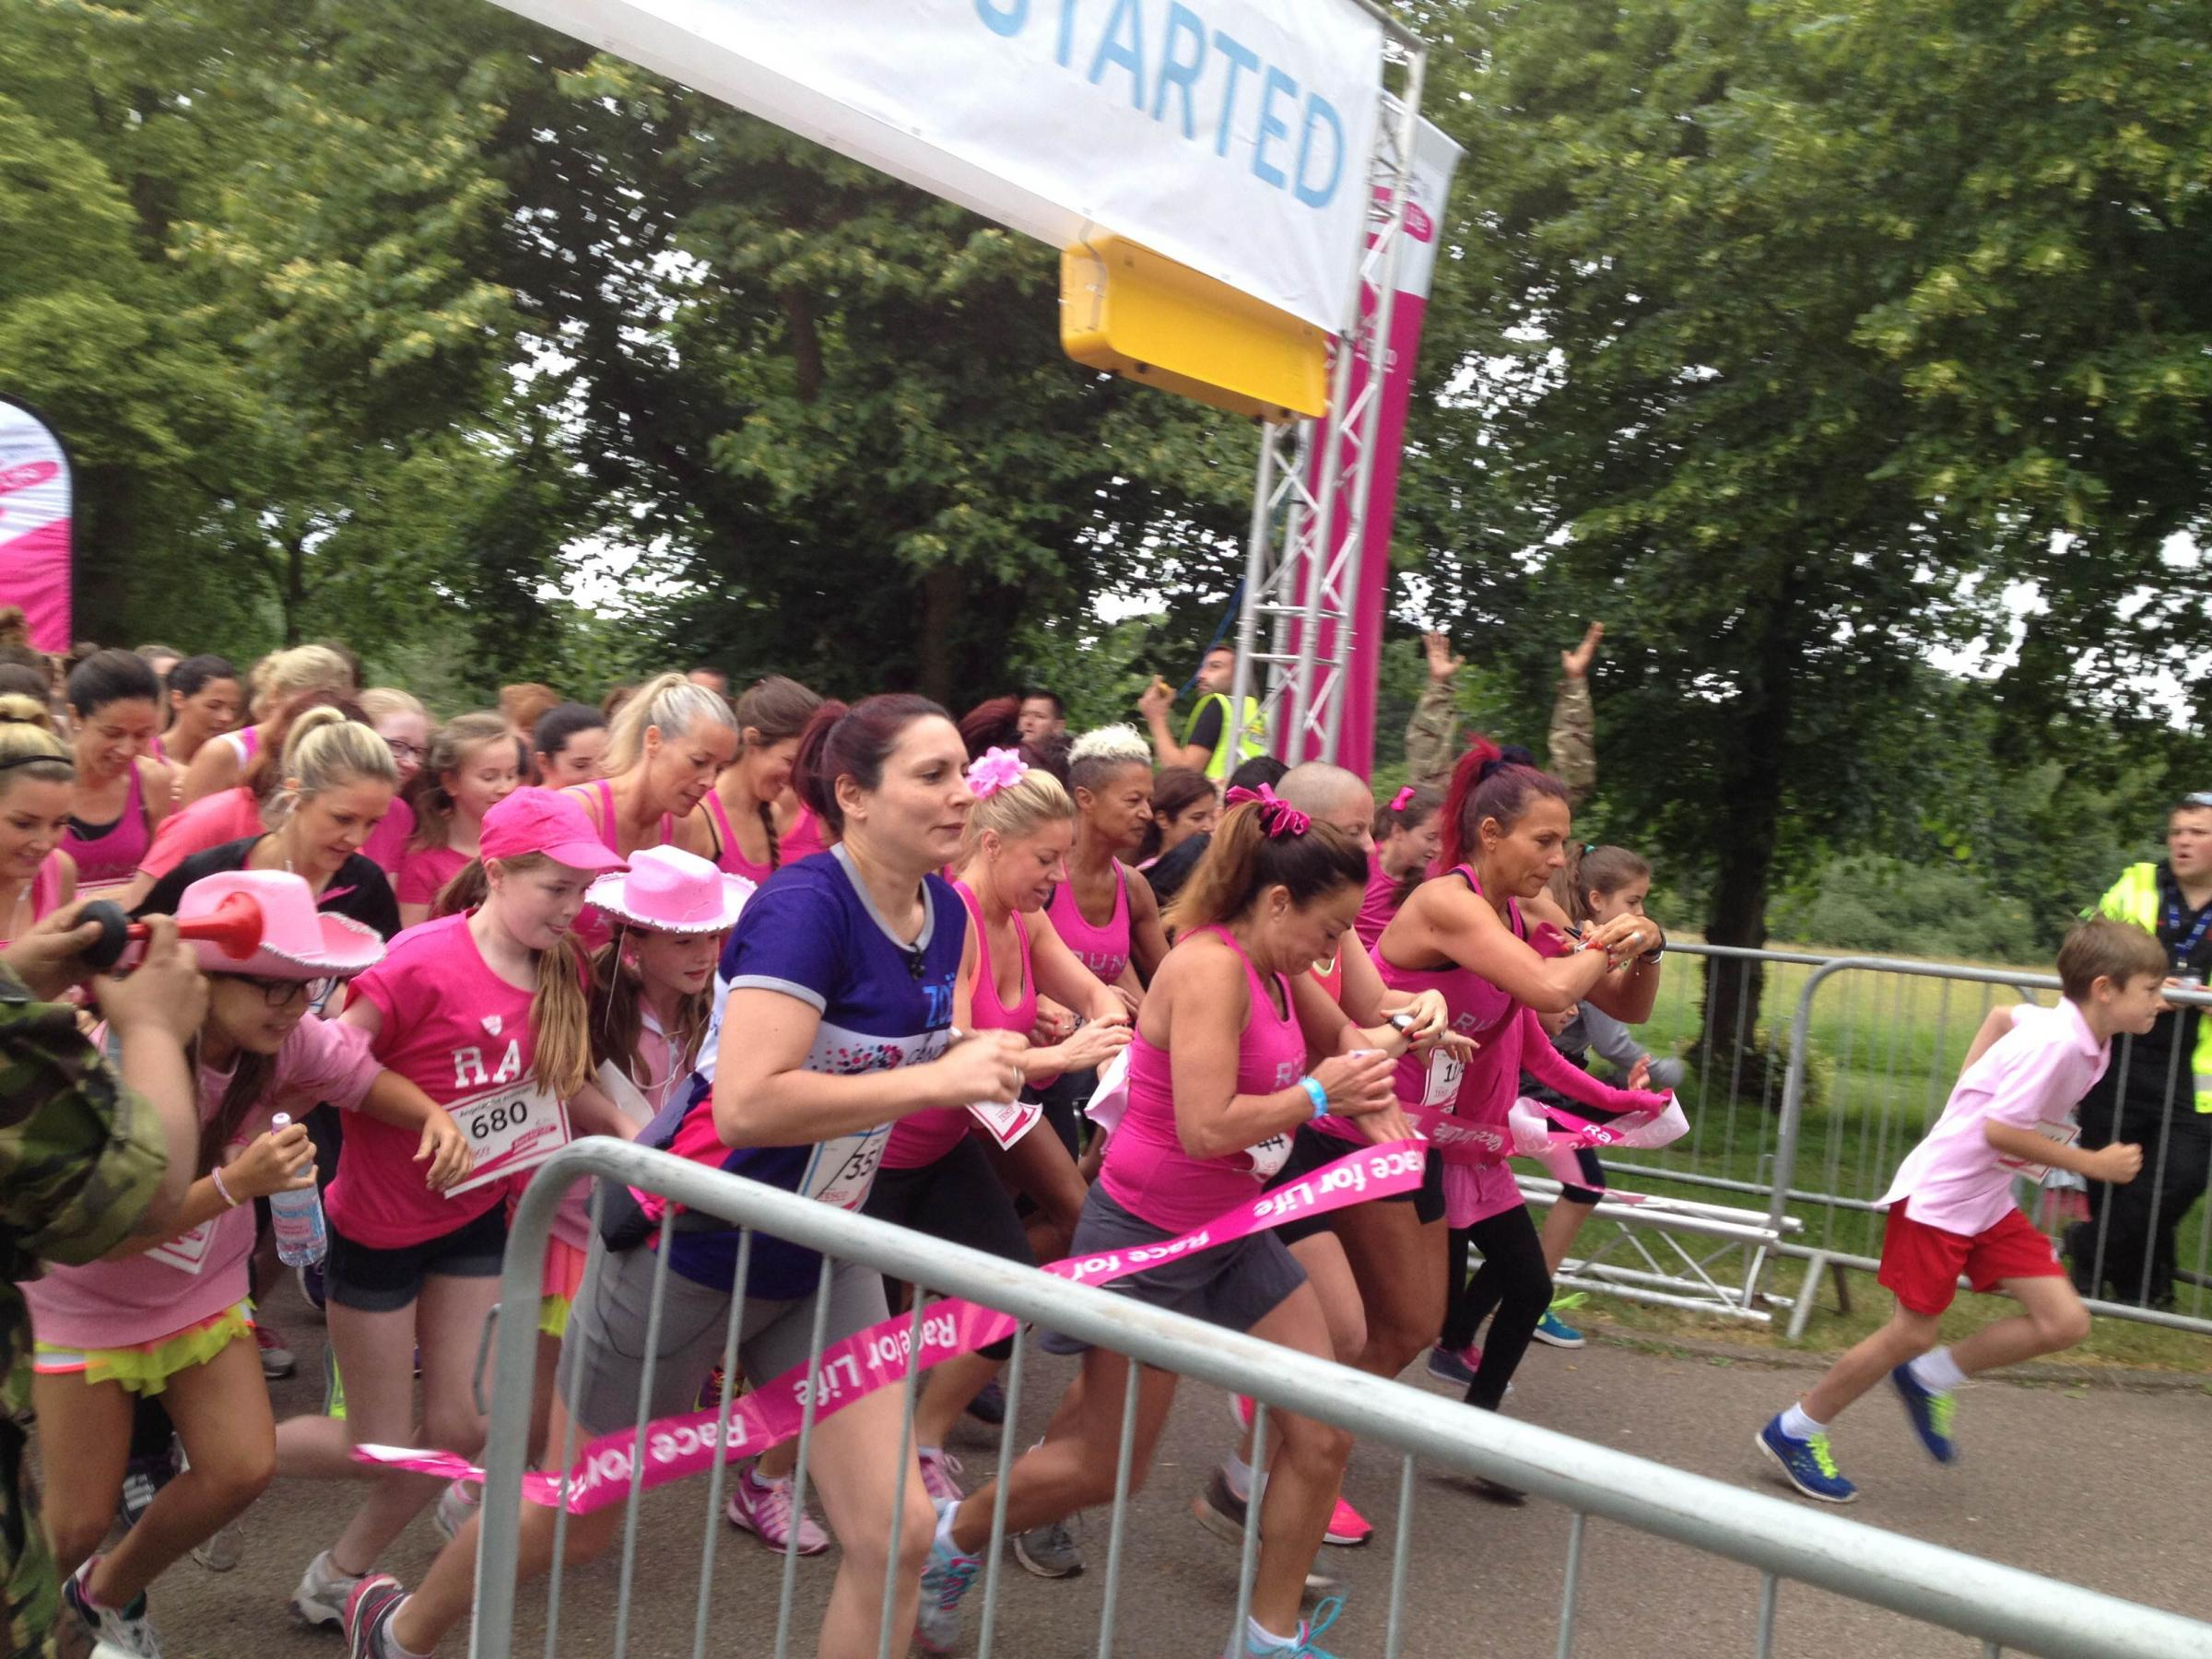 Mighty mums, gutsy grans and feisty friends all took to Trent Park for Cancer Research UK's Race for Life on Sunday morning